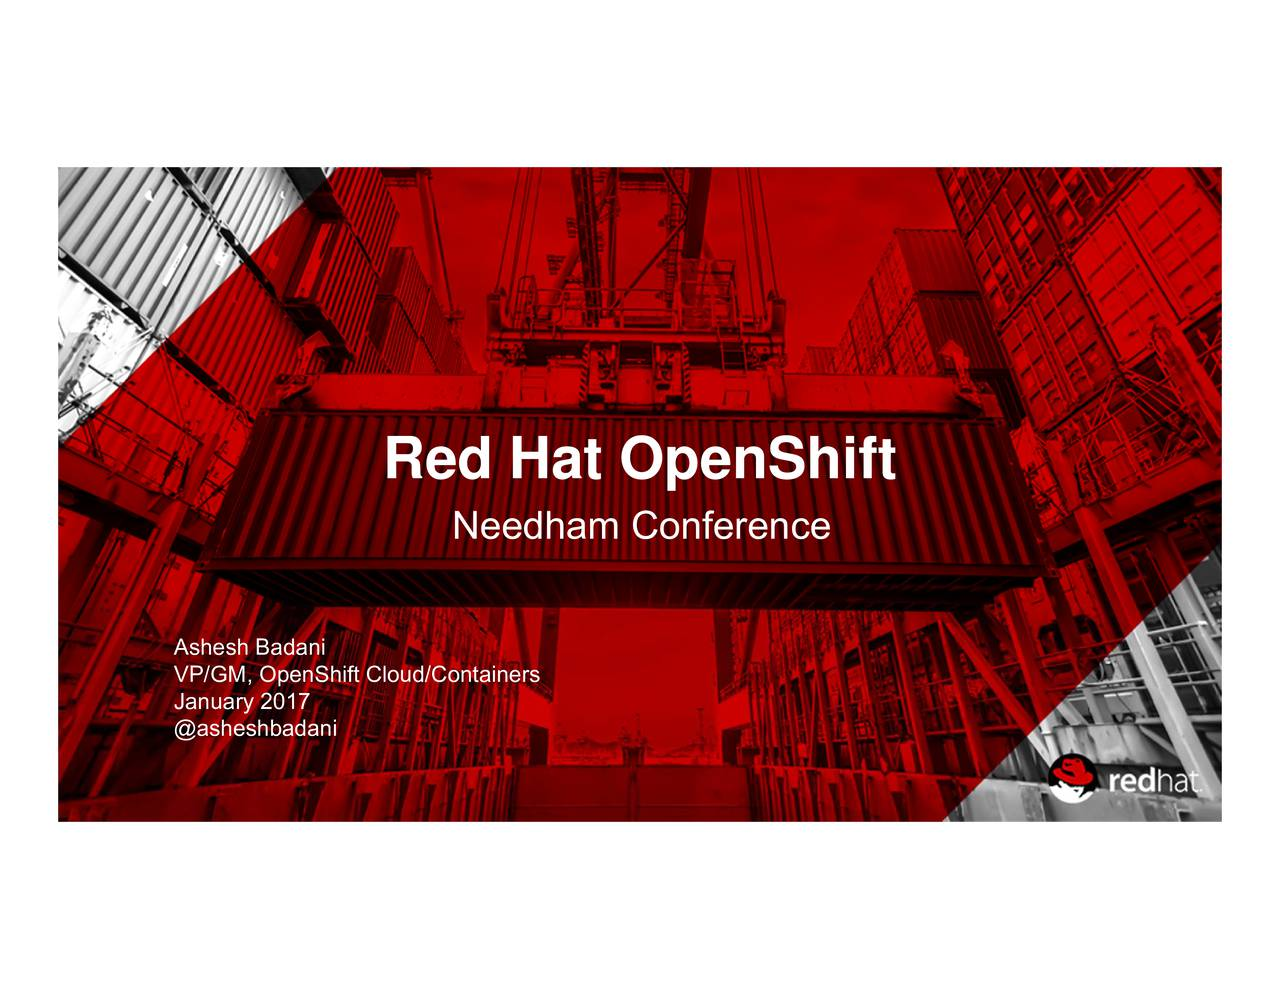 Red Hat OpenShift AsVP/aBuaspinShitCnlioud/Containers